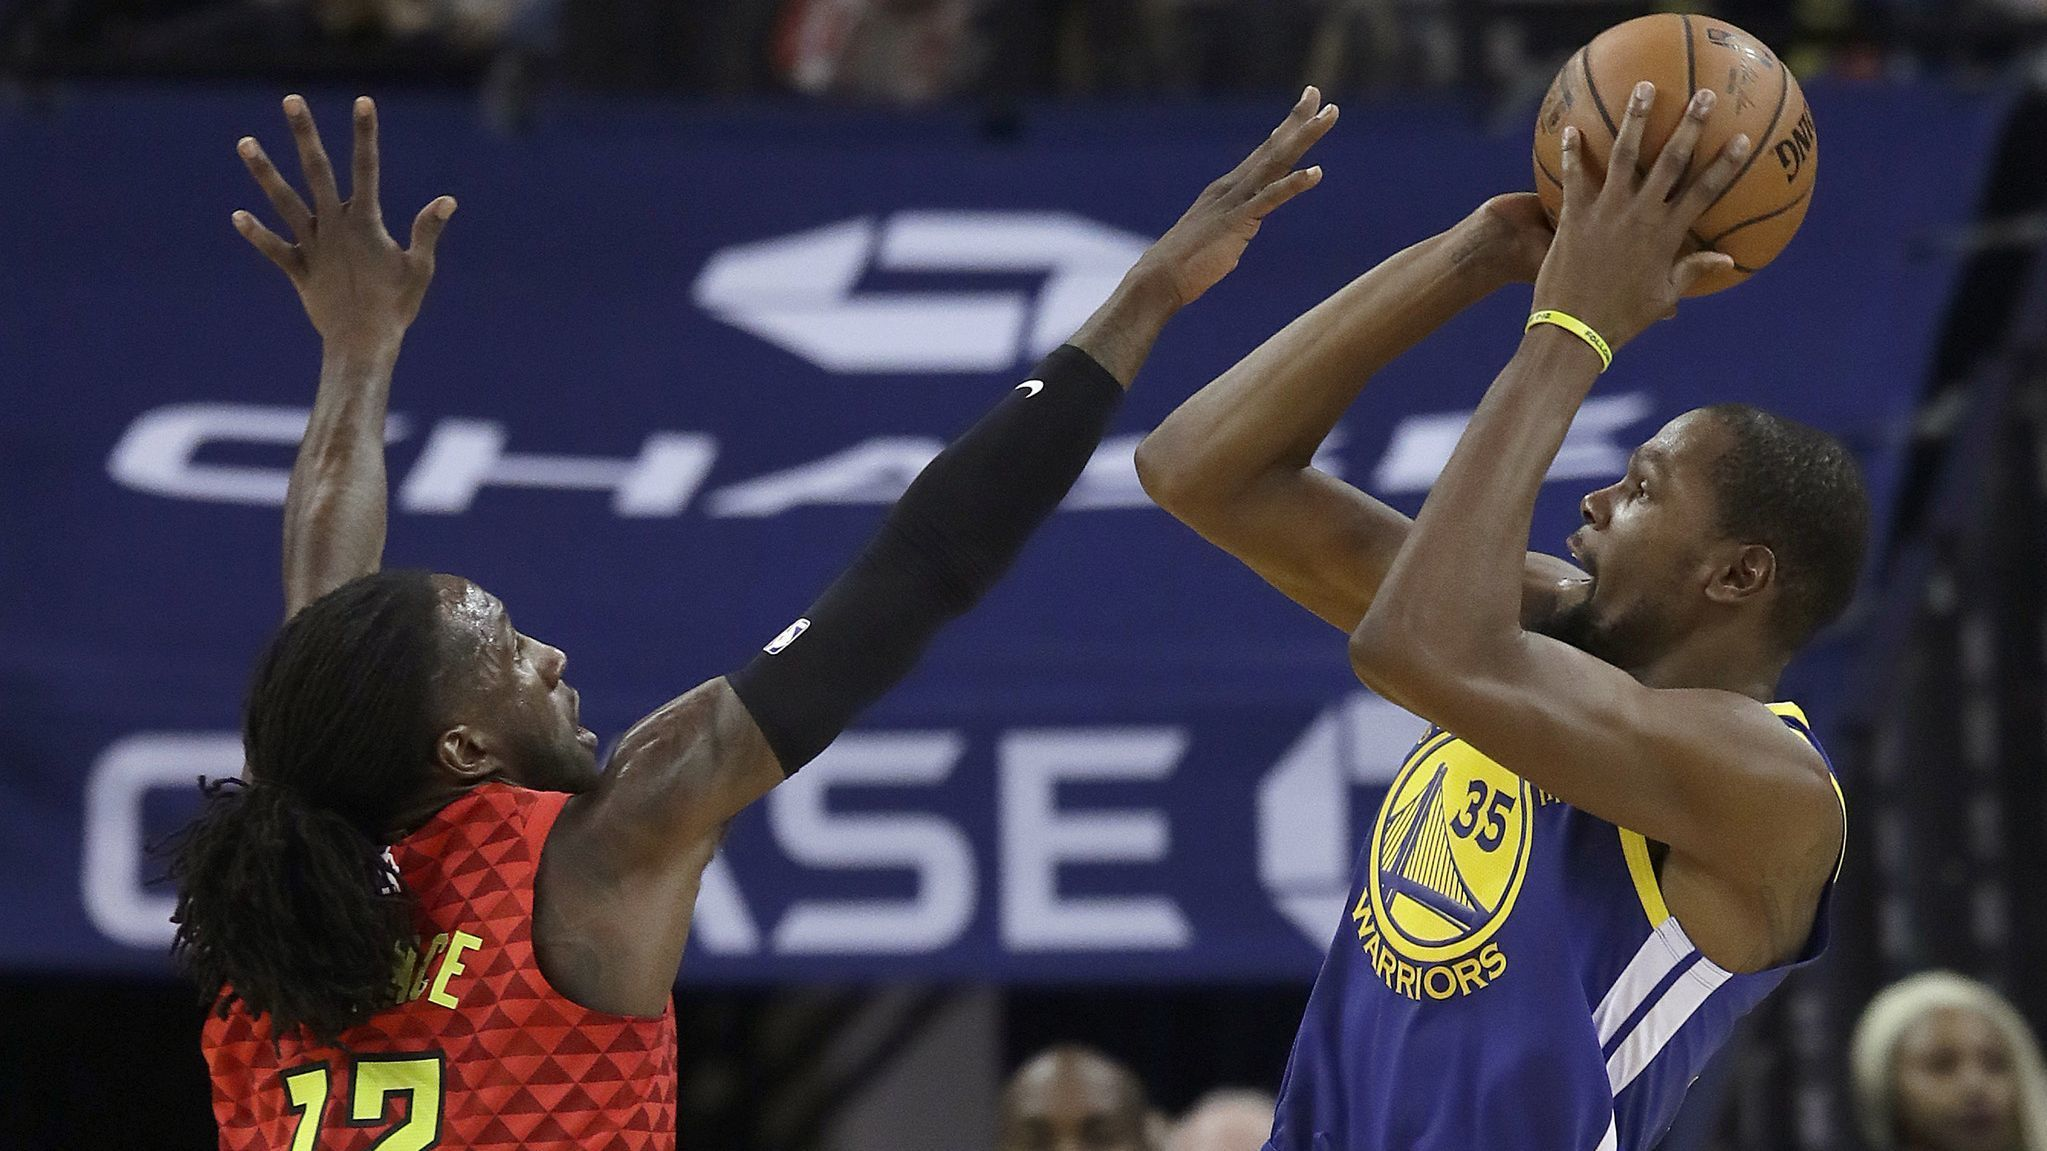 NBA: Kevin Durant leads Warriors over Hawks after Draymond Green's suspension